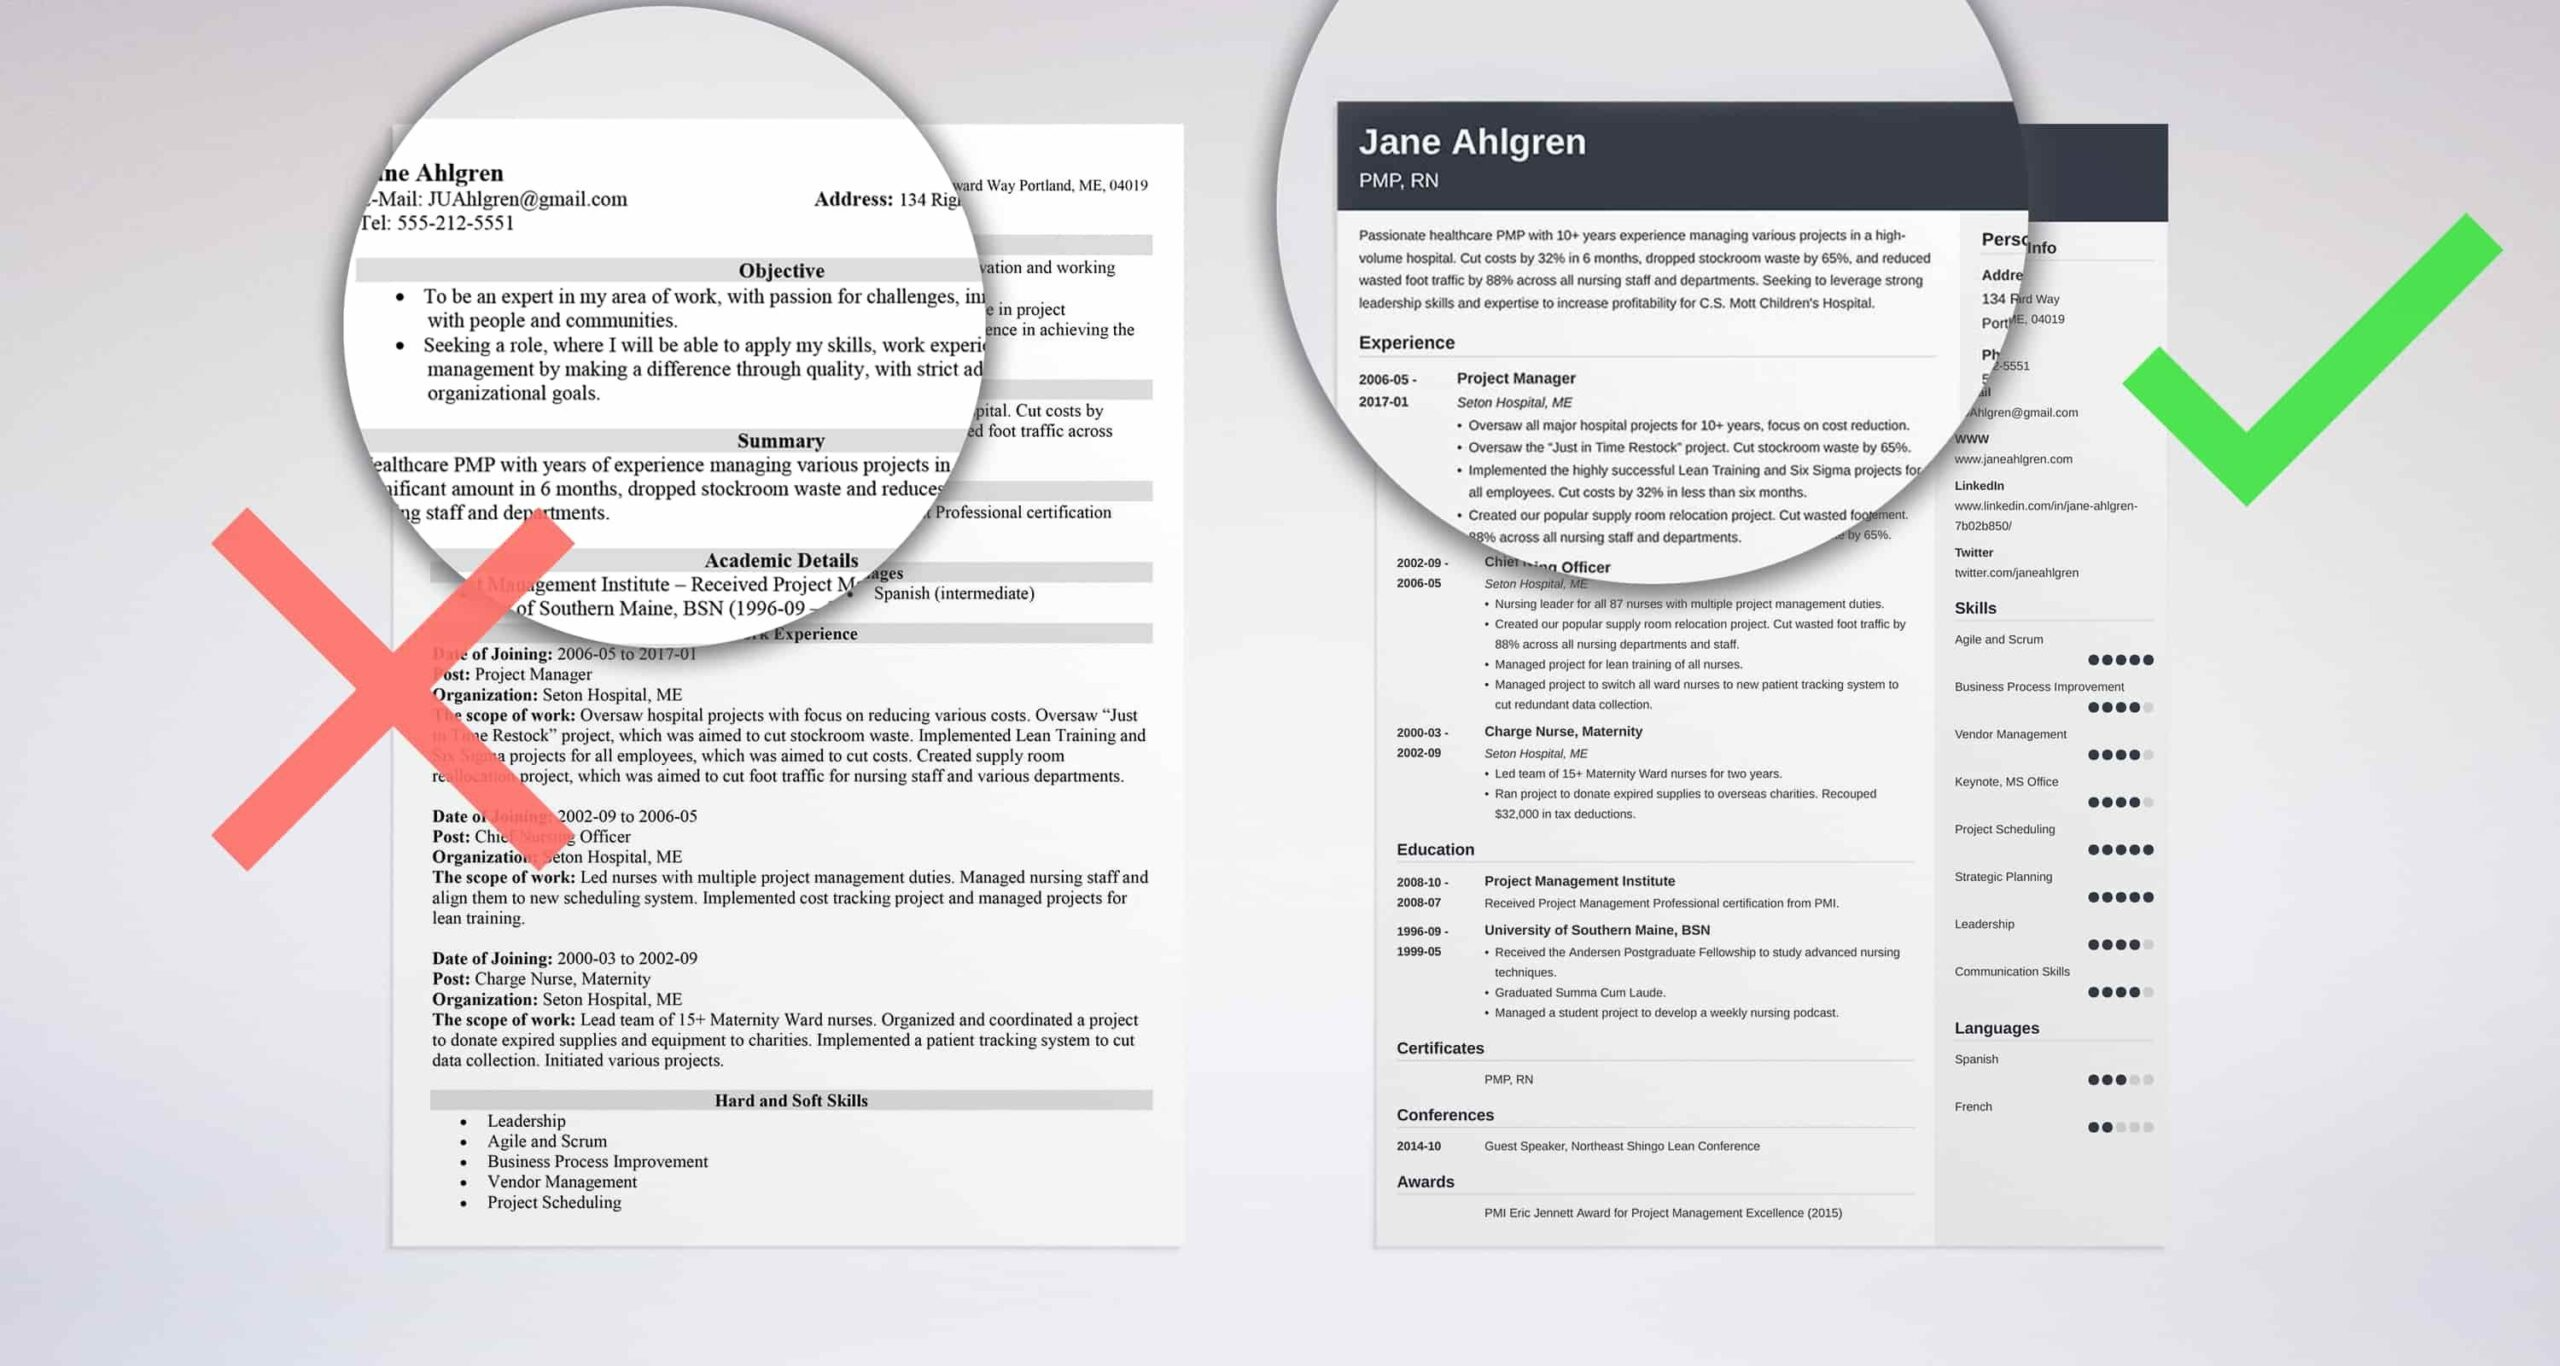 professional resume summary examples statements builder for example profile highlights Resume Summary Builder For Resume